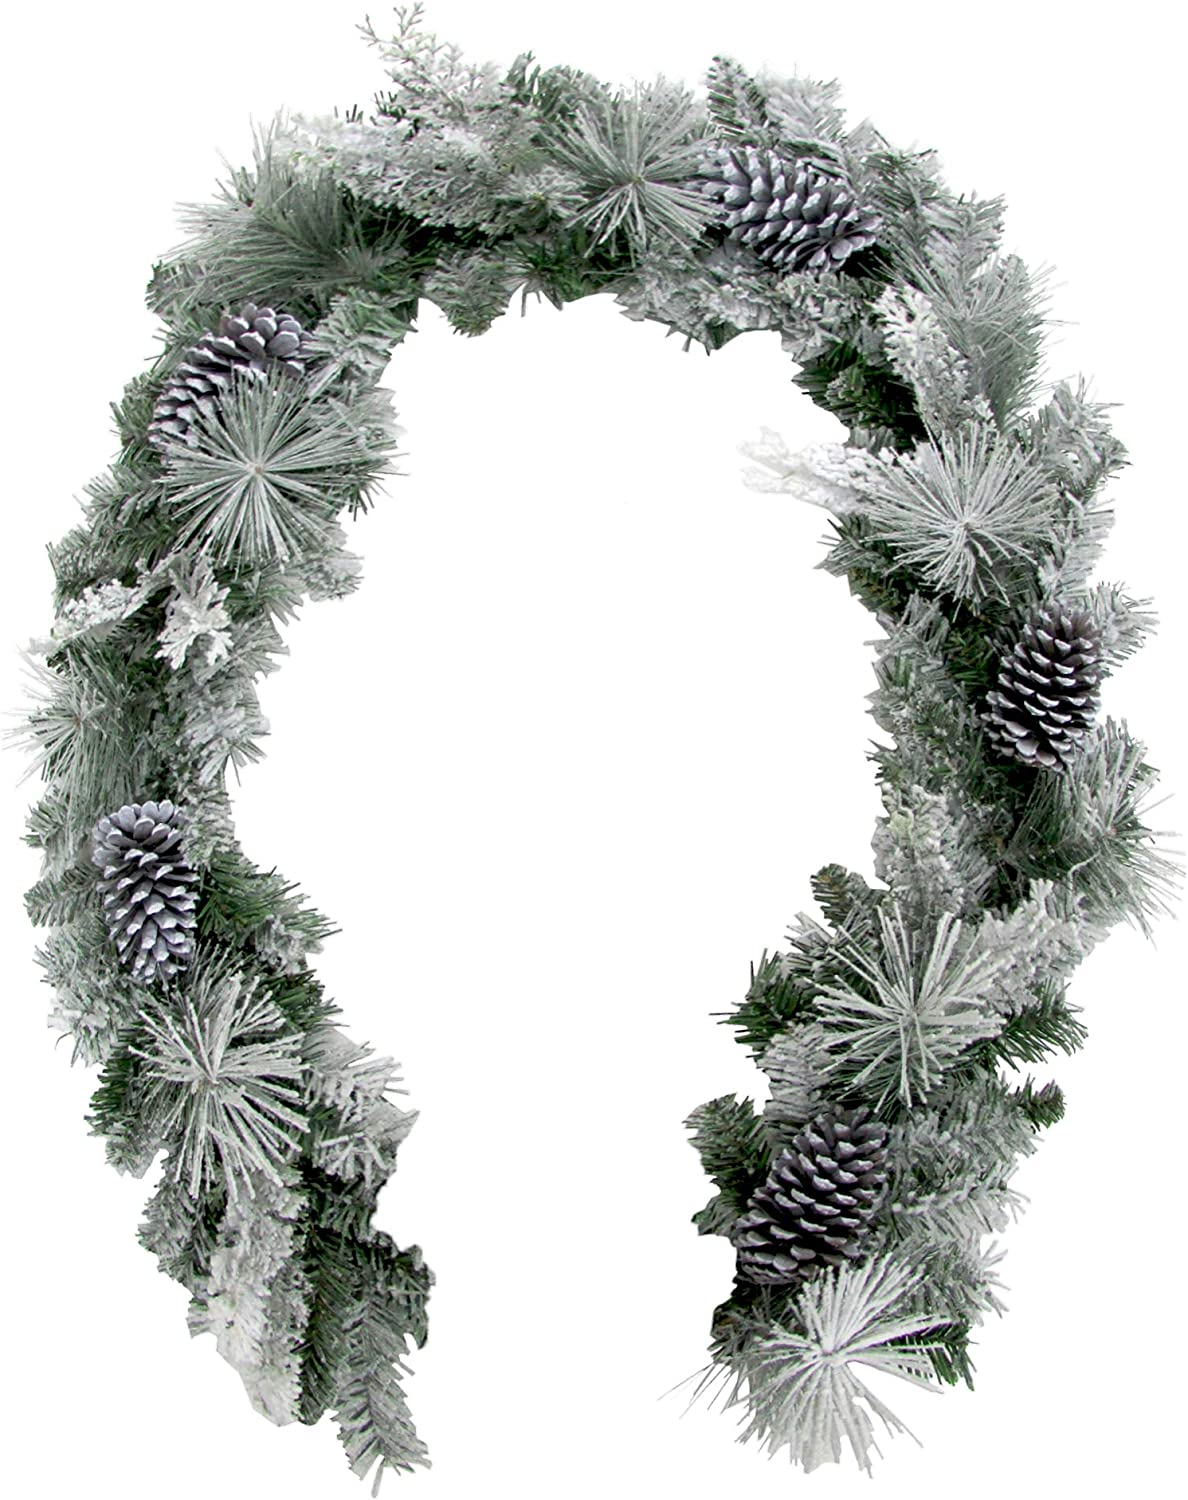 Shipping included Fraser Hill Farm 6-Ft. Christmas Fort Worth Mall Flocked Snow Pinec with Garland